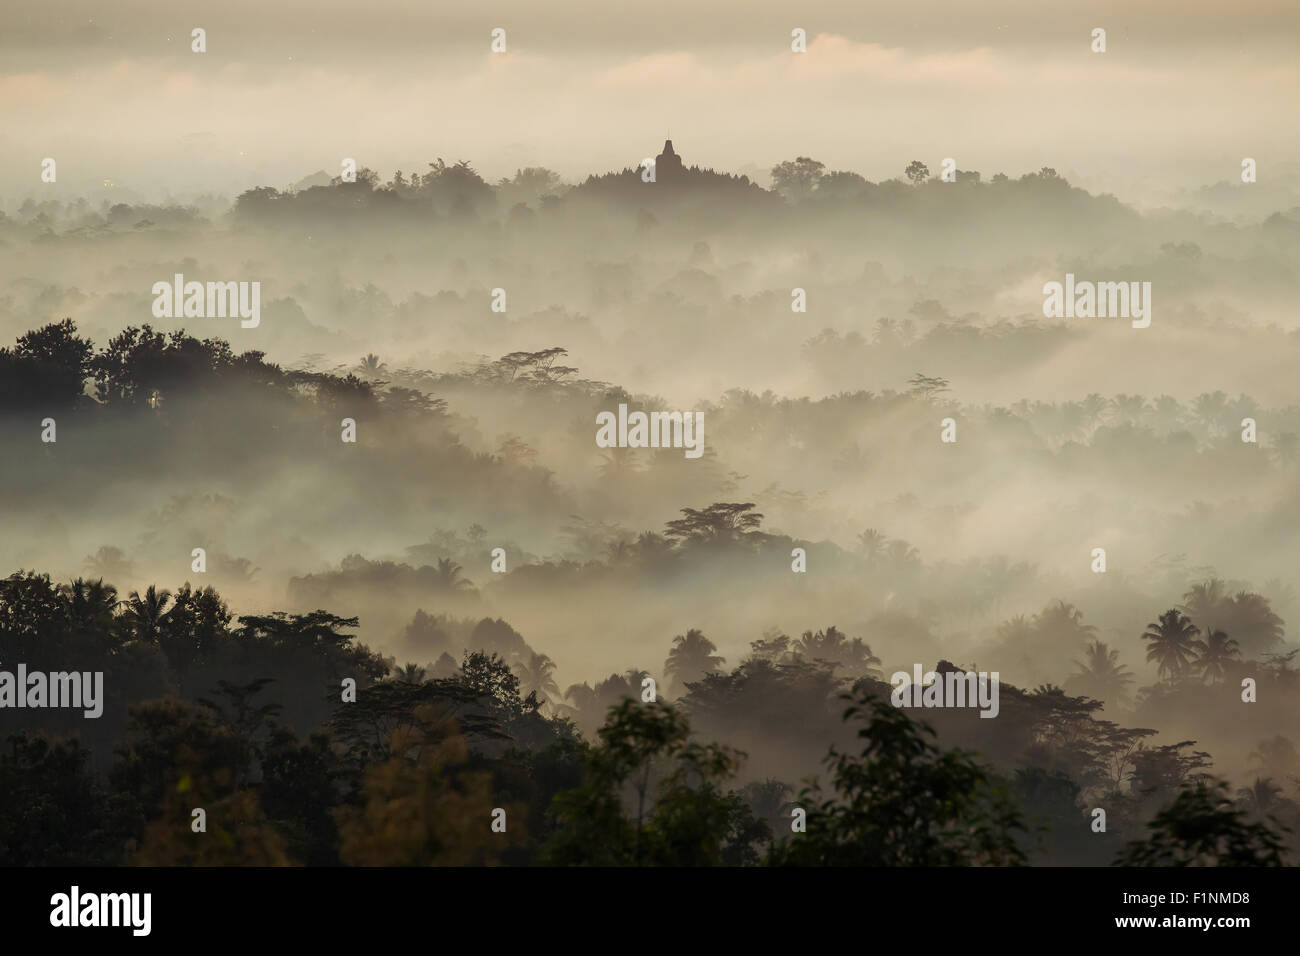 Colorful sunrise over Borobudur temple dans la jungle, forêt brumeuse Indoneisa Photo Stock